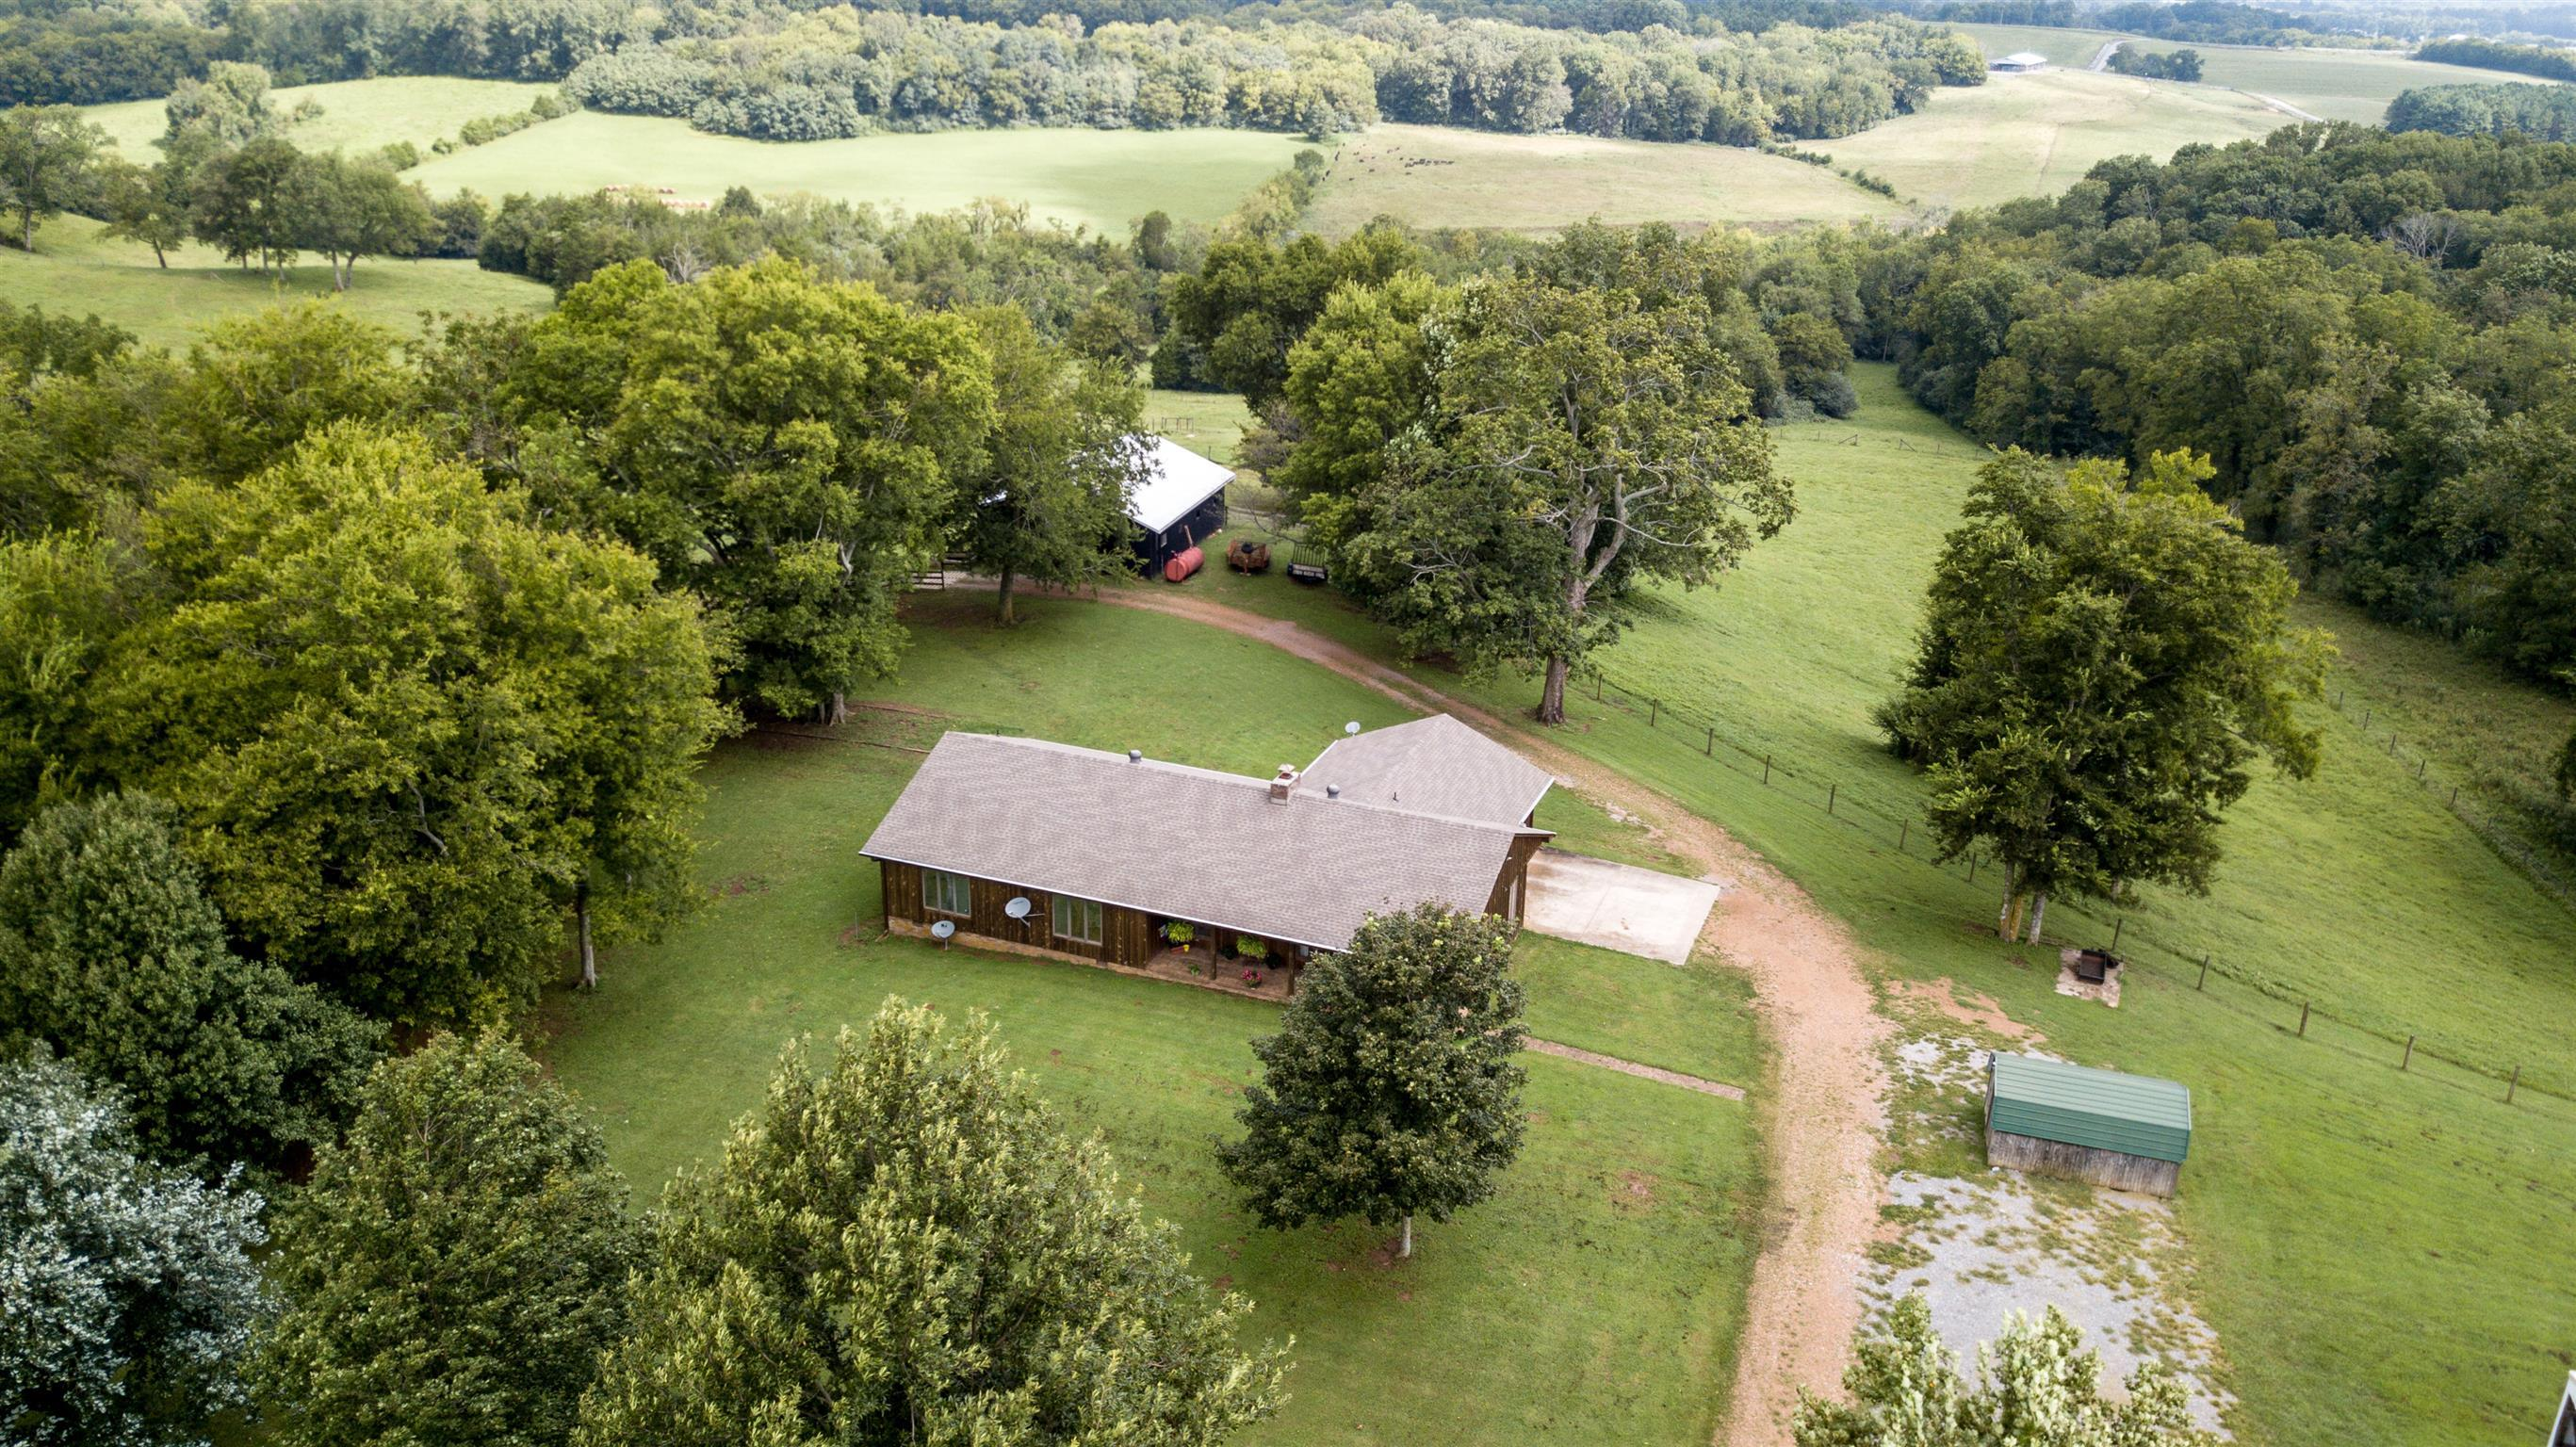 2111 Hobo Shaw Rd, Lewisburg, TN 37091 - Lewisburg, TN real estate listing